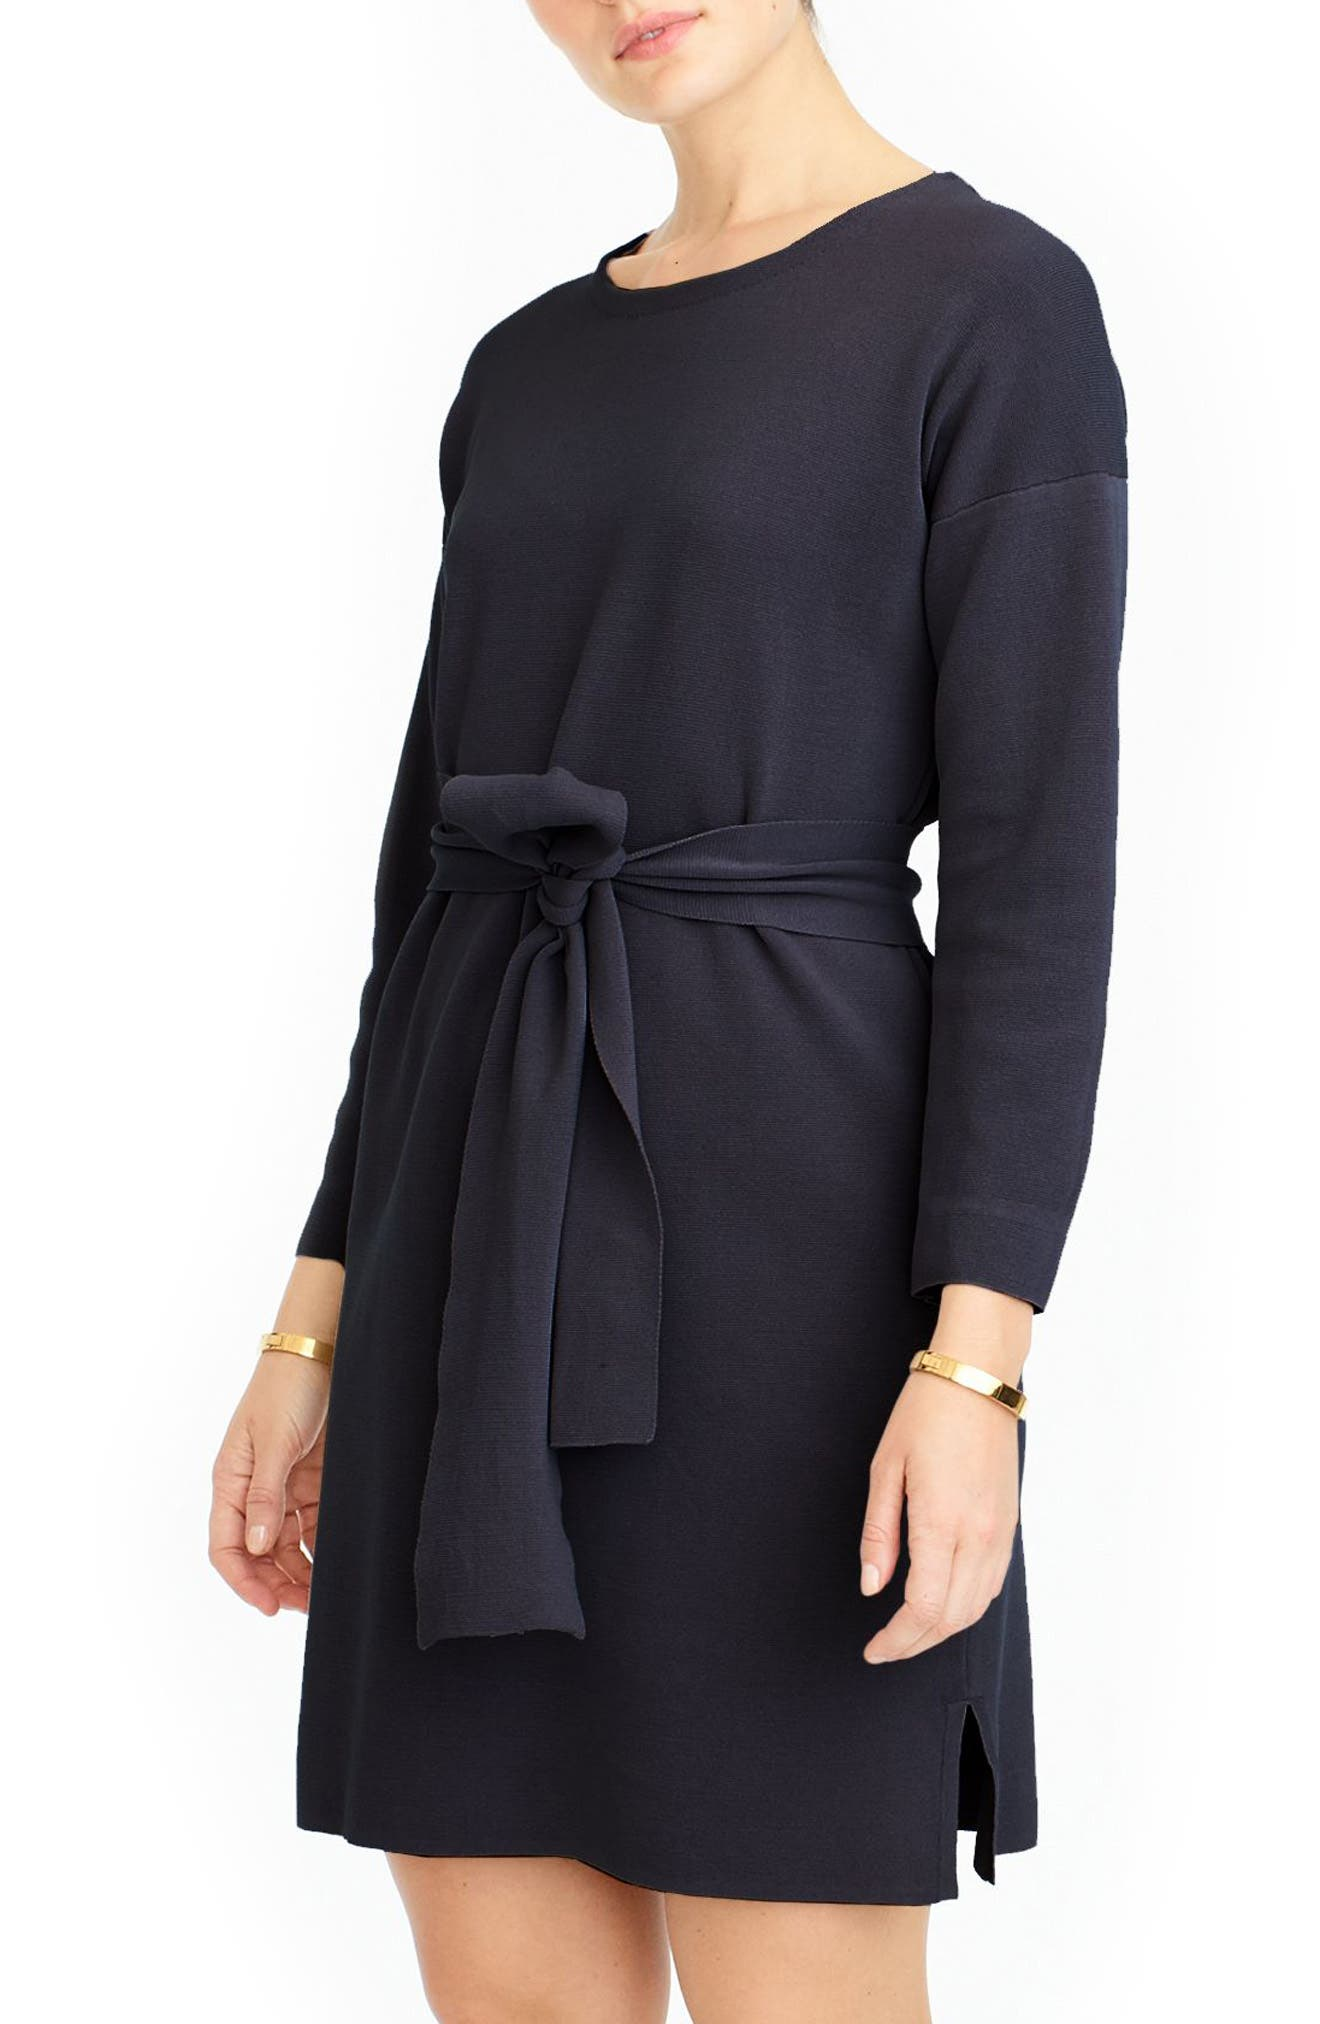 J.Crew Tie Waist Knit Dress,                         Main,                         color, Indigo Sea